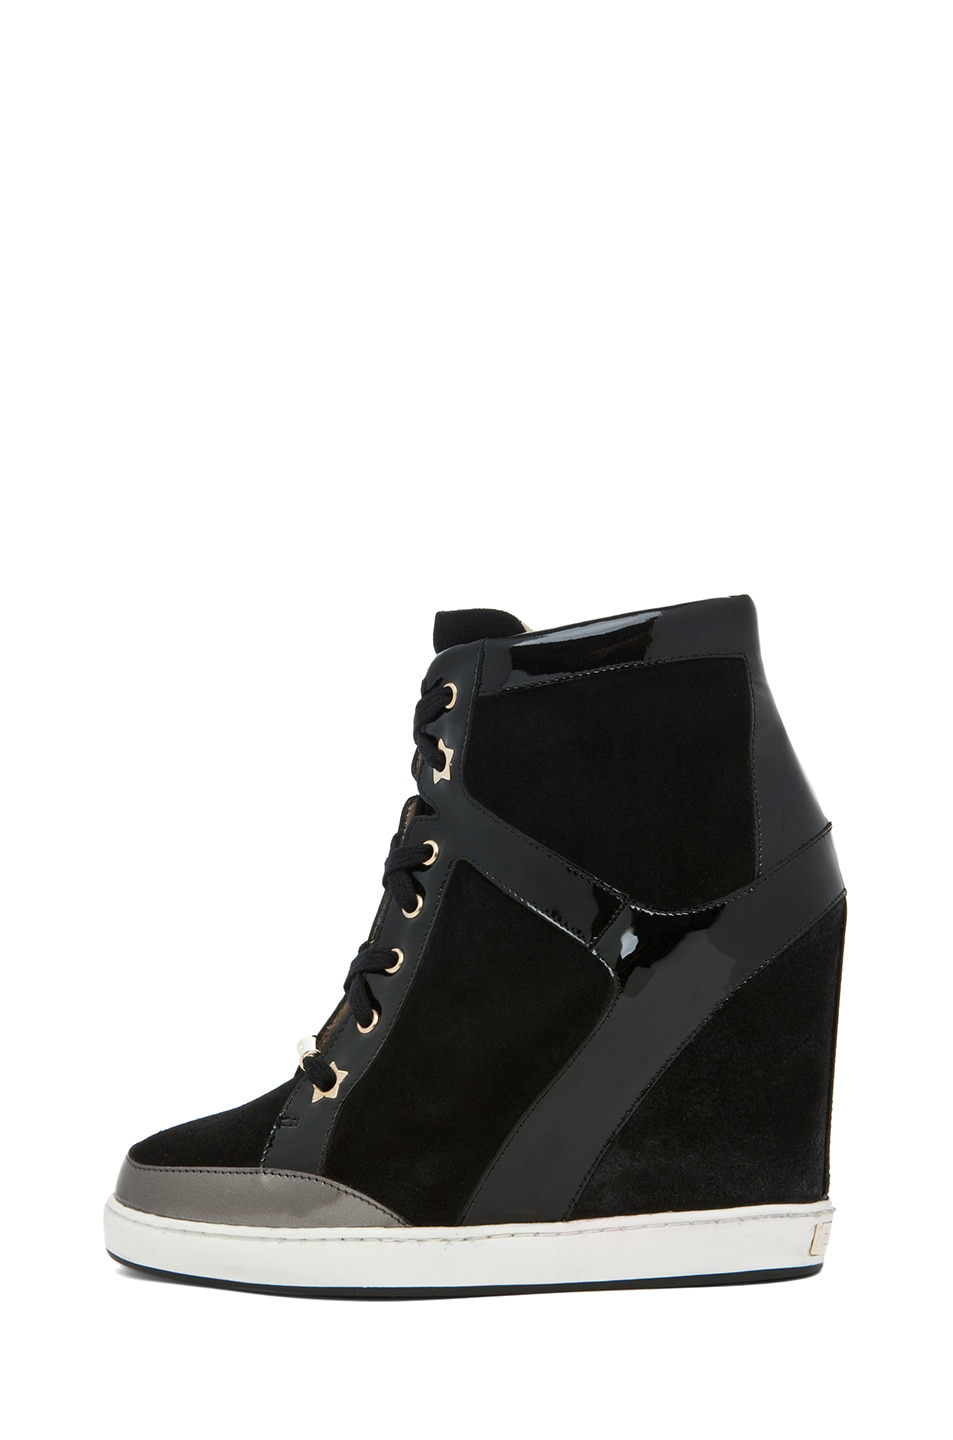 Image 1 of Jimmy Choo Panama Wedge Sneaker in Black